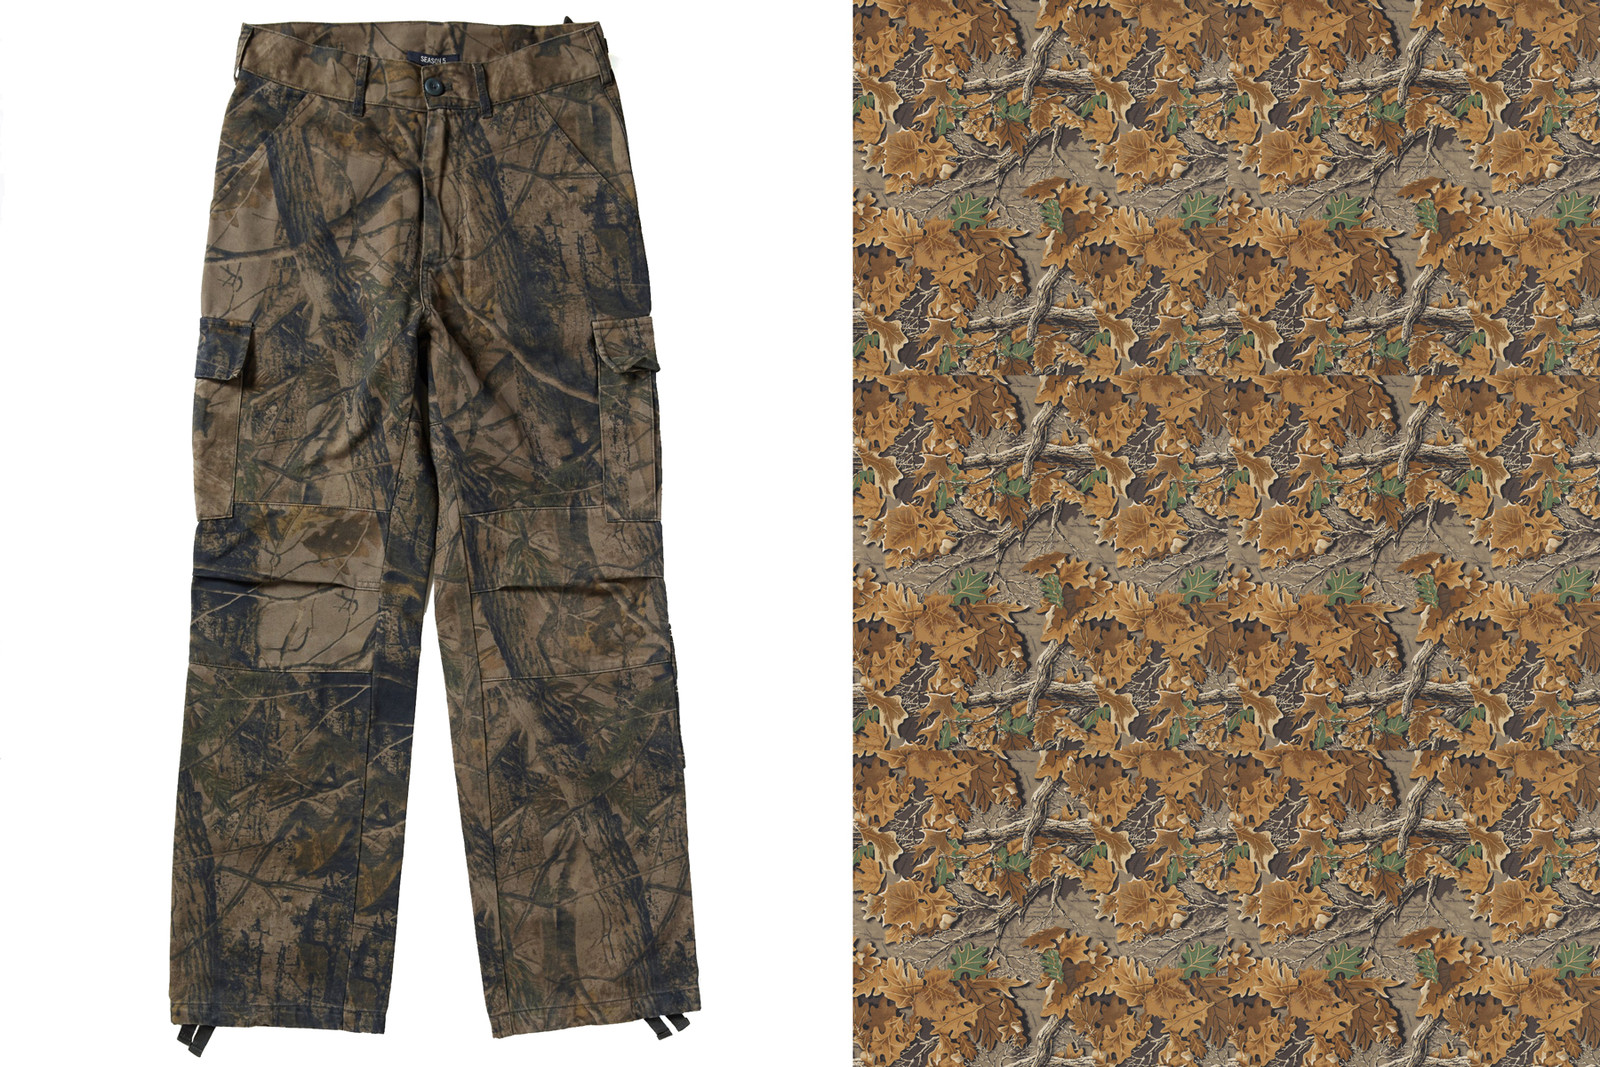 YEEZY Kanye West Lebron James Jordan Outdoor Enterprises ltd Camouflage pattern rip off copy steal lawsuit unknwn copyright infringement